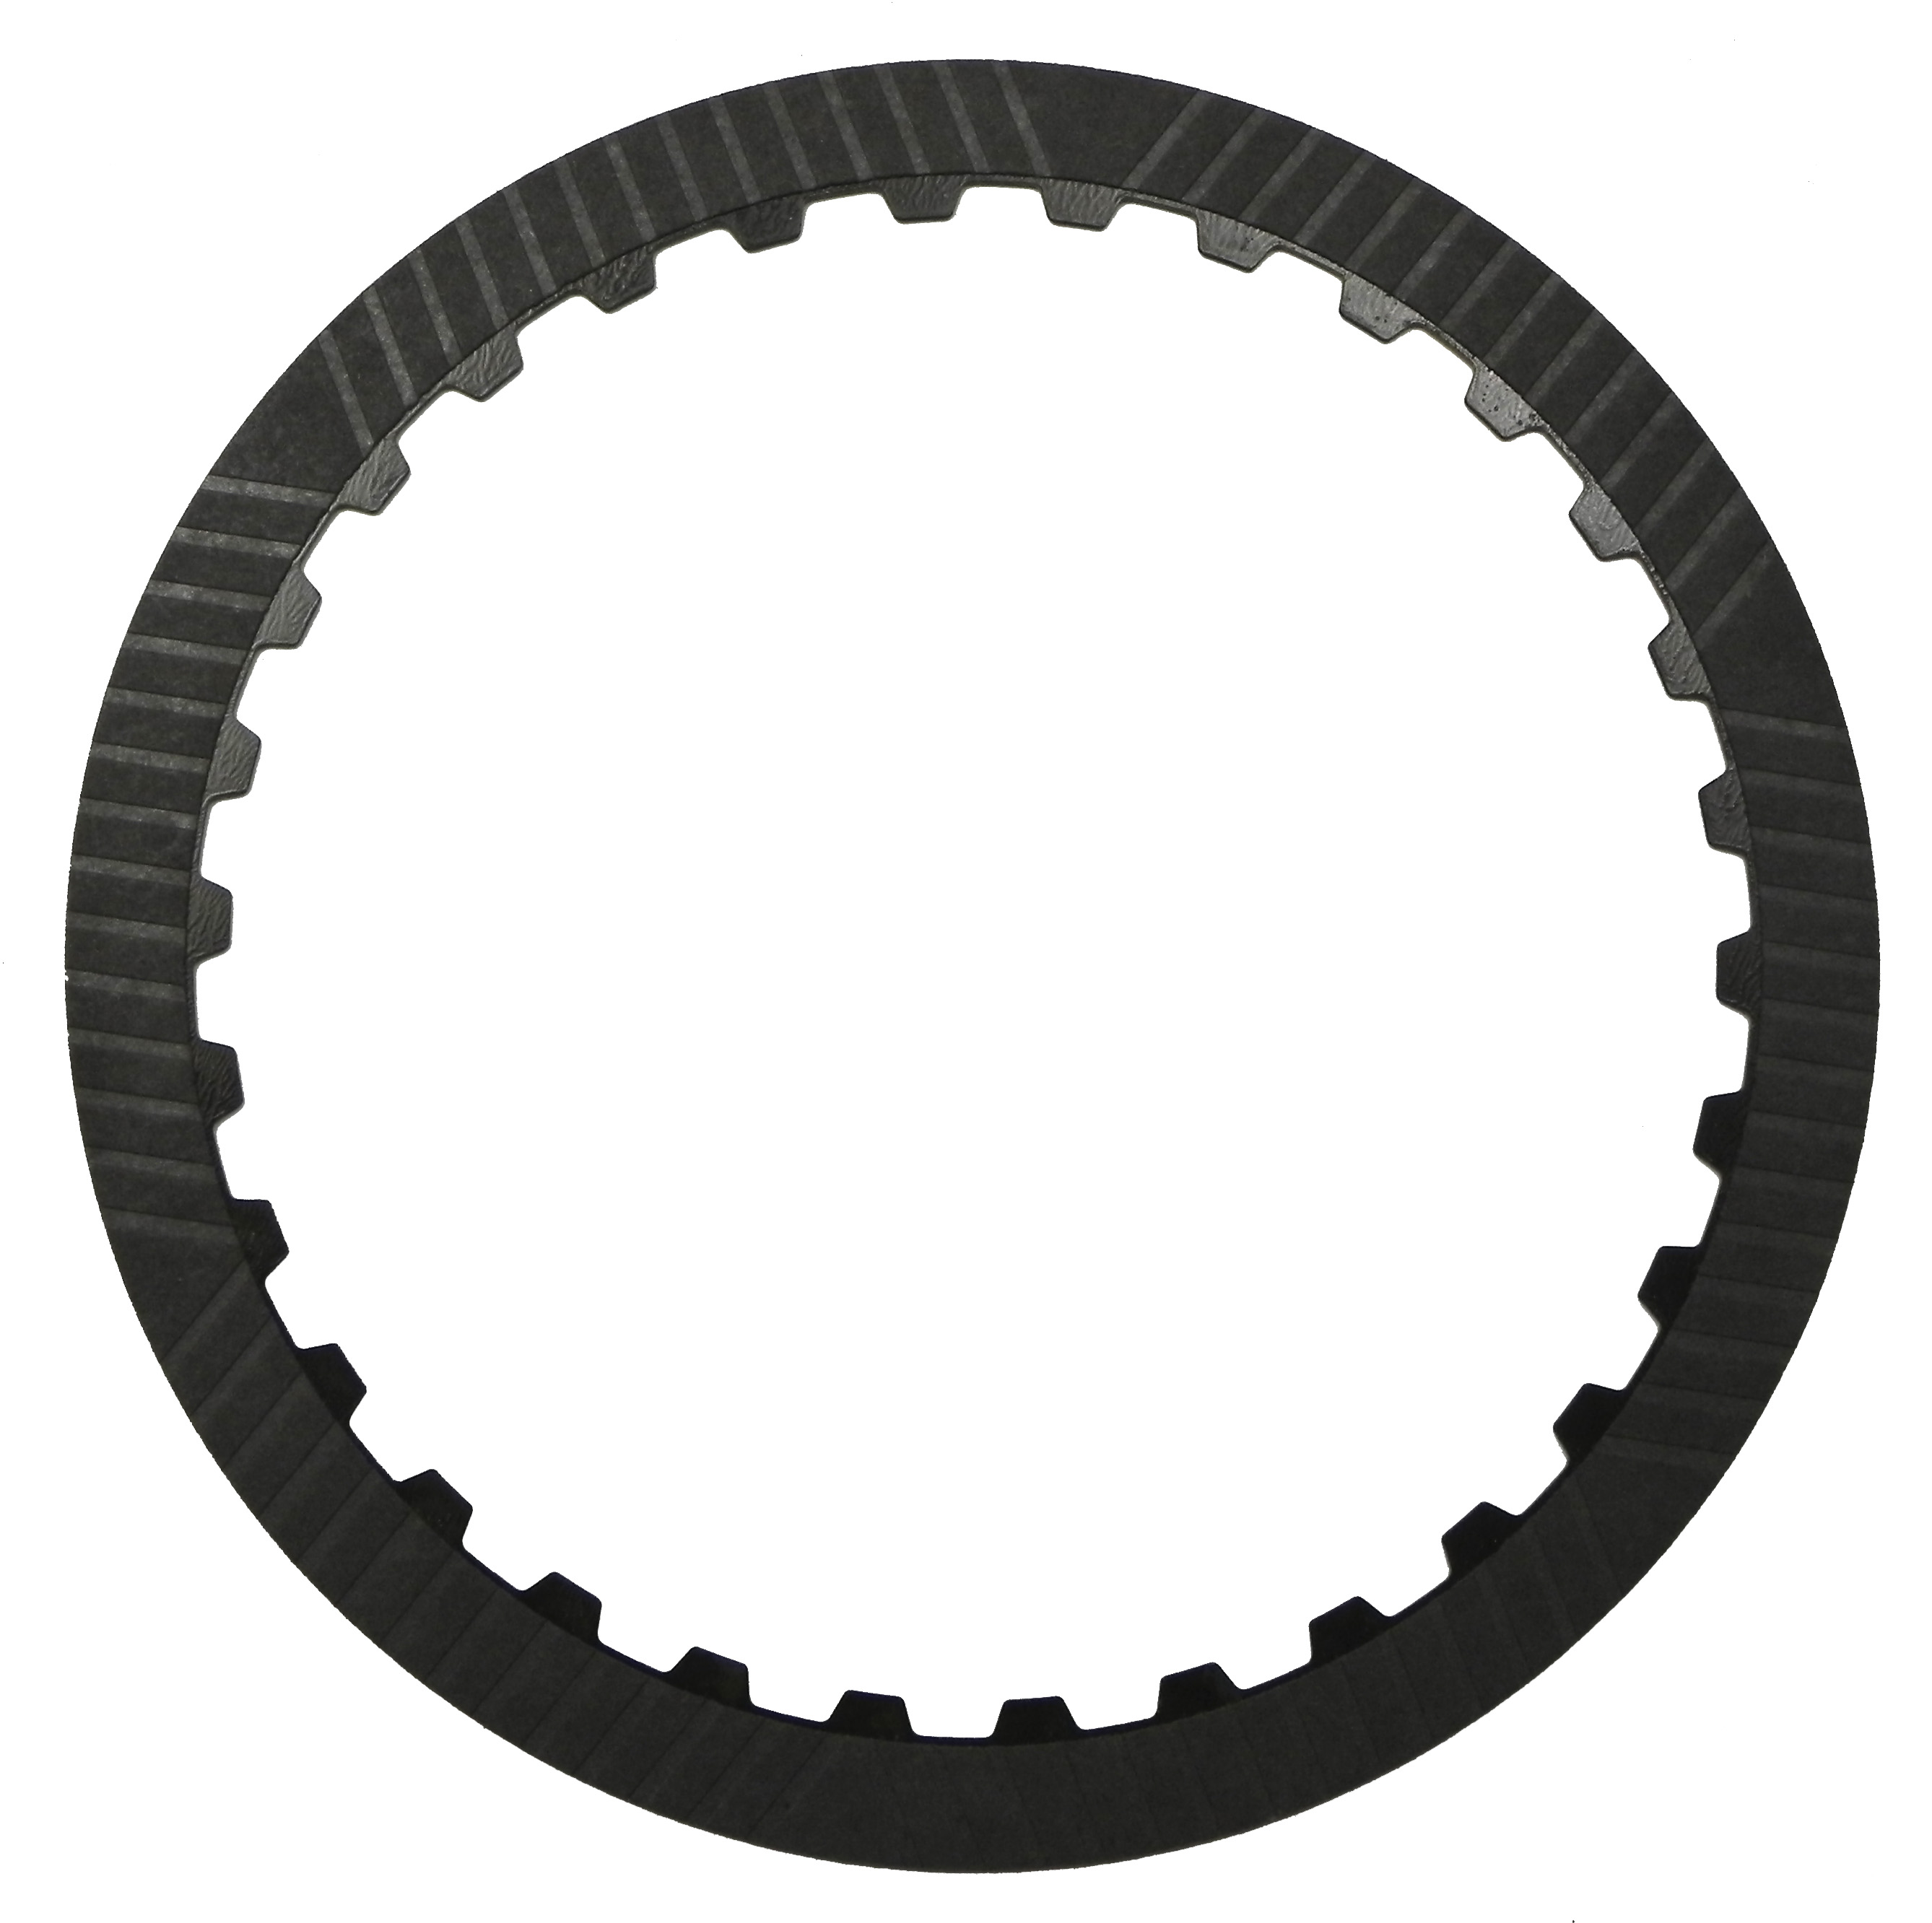 R520007 | 2004-ON Friction Clutch Plate High Energy B, E, F, Reverse High Energy